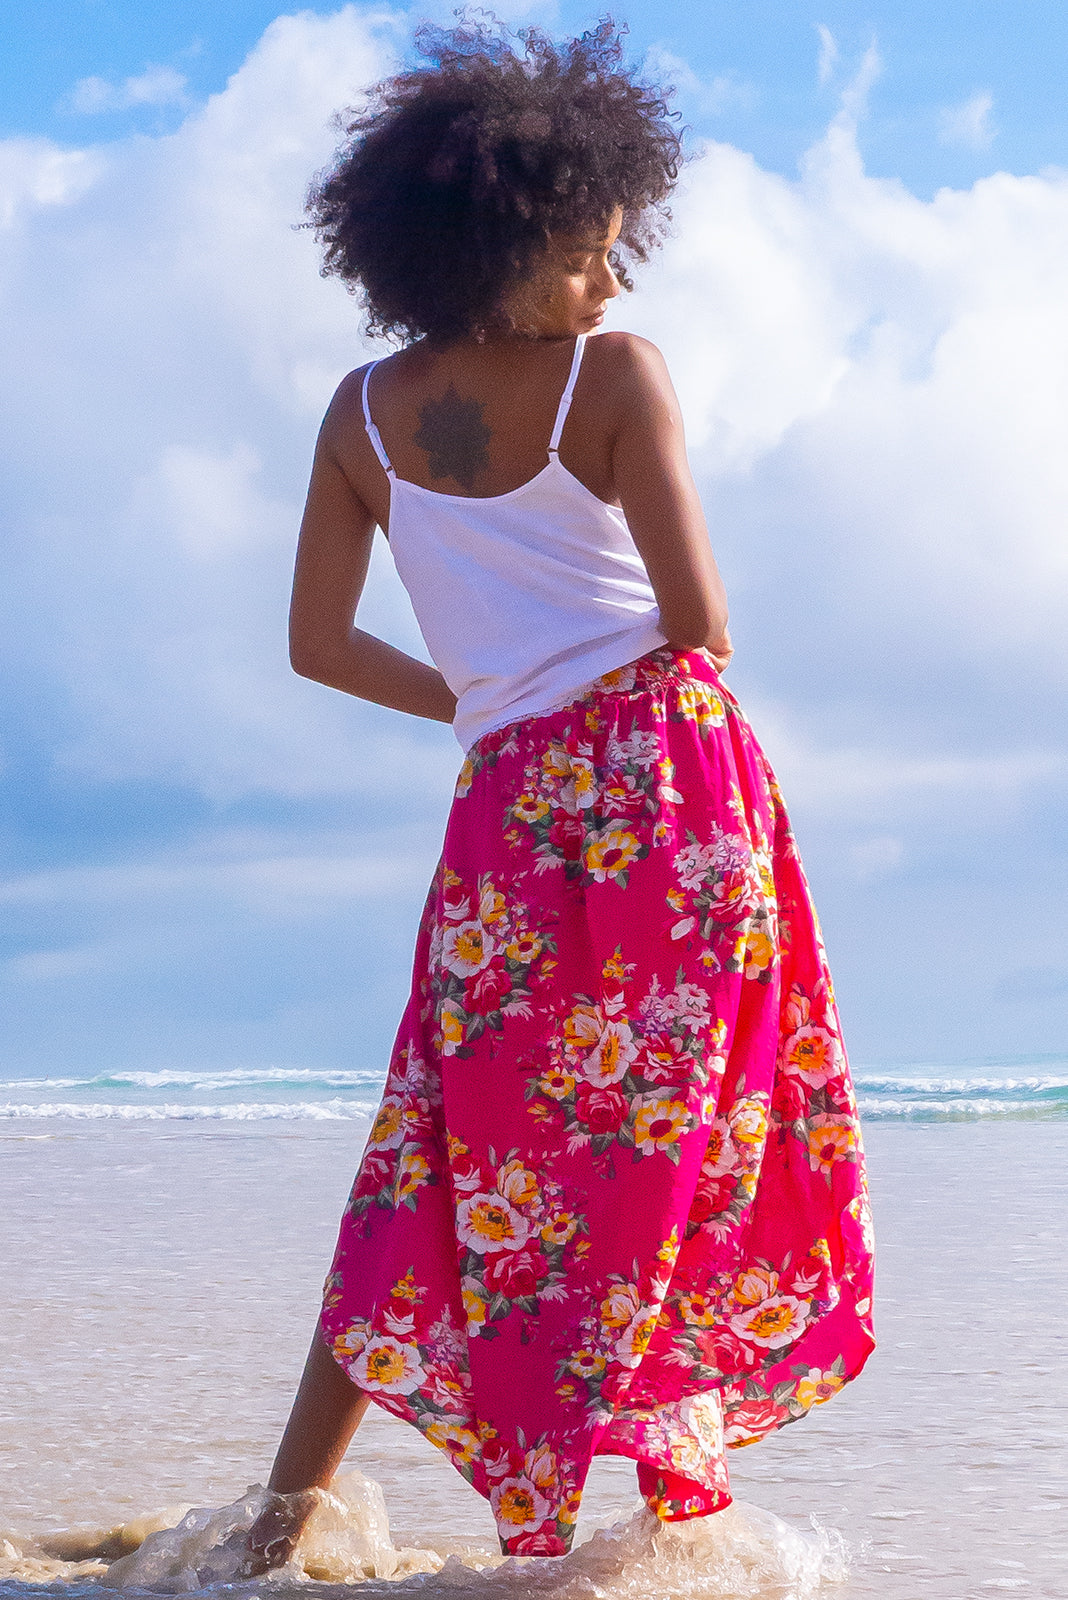 The Sails Fuchsia Culebra Cotton Maxi Skirt has scooped hemline, shorter at sides, V-shaped panelled waist band, elasticated back of waist, side pockets and it's 65% cotton, 35% rayon in bold fuchsia pink base with large summer floral print.